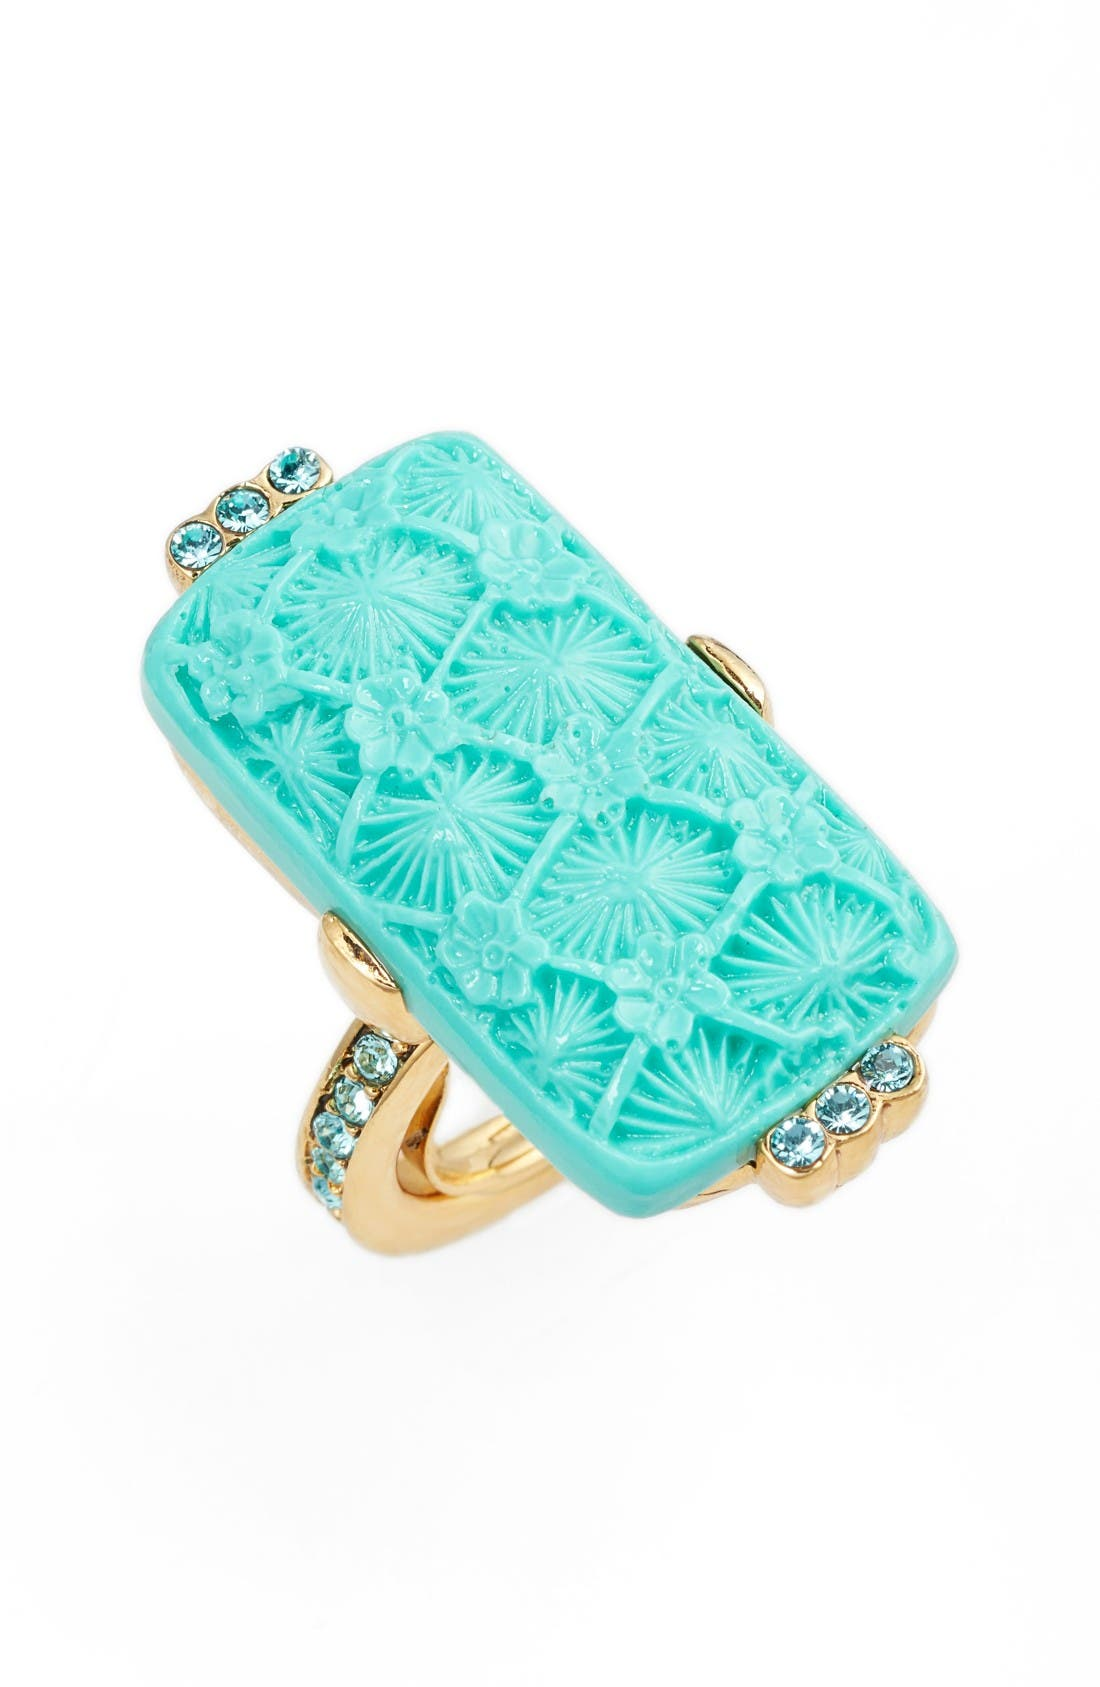 Main Image - Oscar de la Renta Carved Resin & Swarovski Crystal Ring